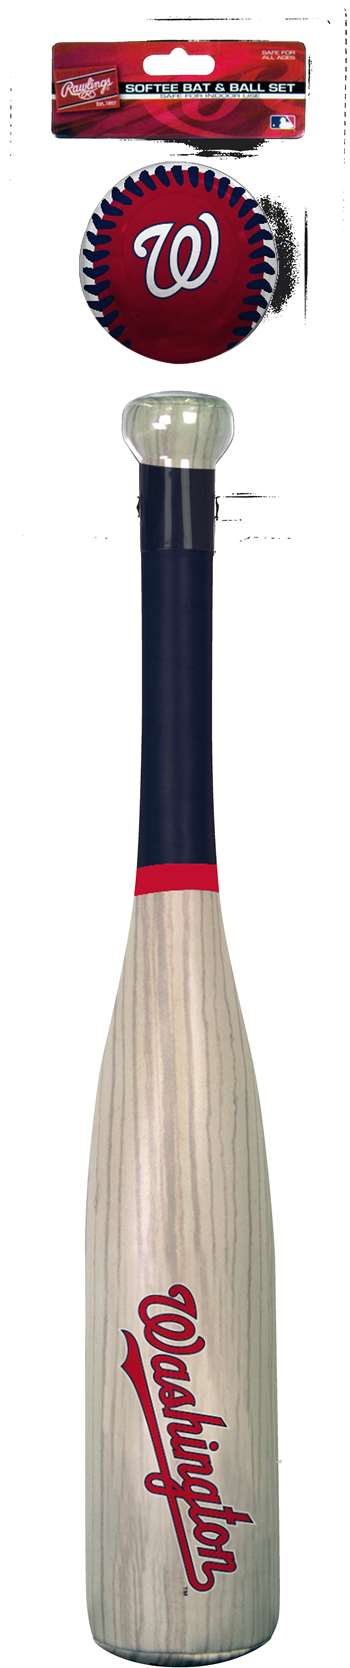 MLB Washington Nationals Grand Slam Softee Baseball Bat and Ball Set (Wood Grain)